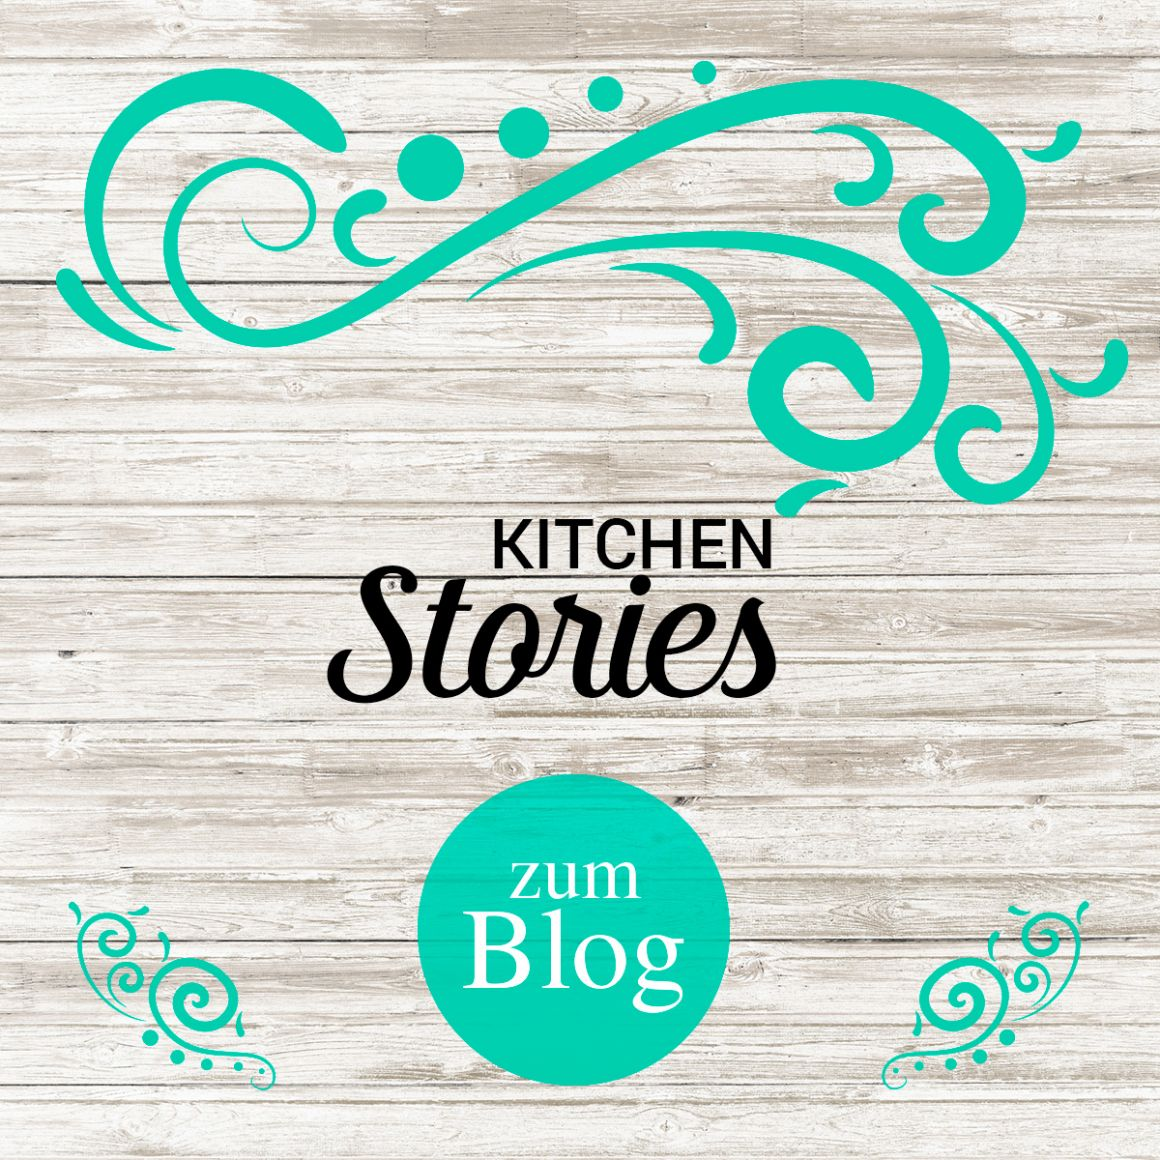 Kitchen Stories - Der Blog von Vintage Kitchen Biel